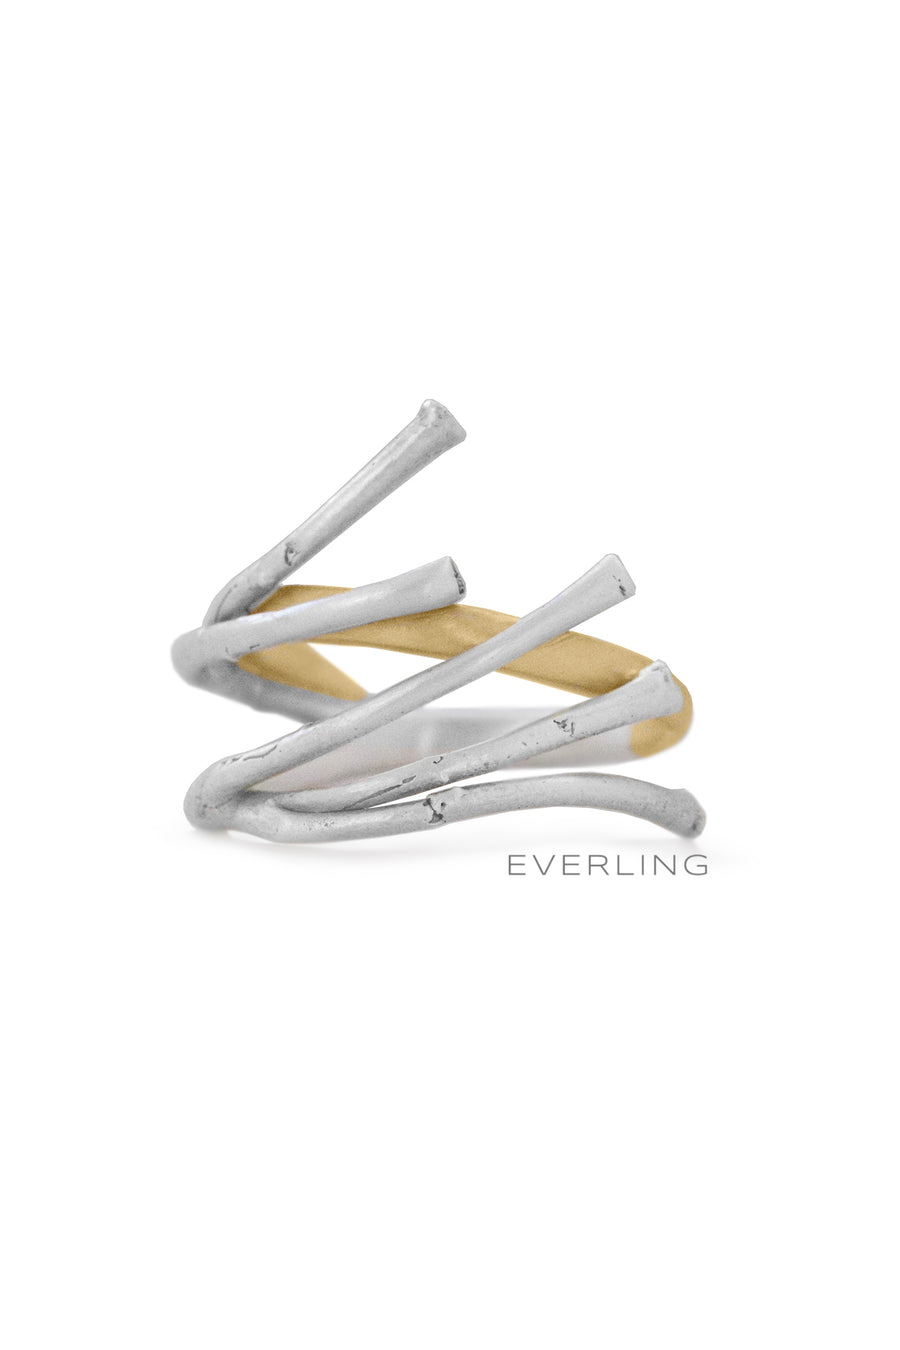 Recycled 14K Yellow Gold and Sterling Silver Branch Ring. #organicjewelry #designerjewelry www.everlingjewelry.com